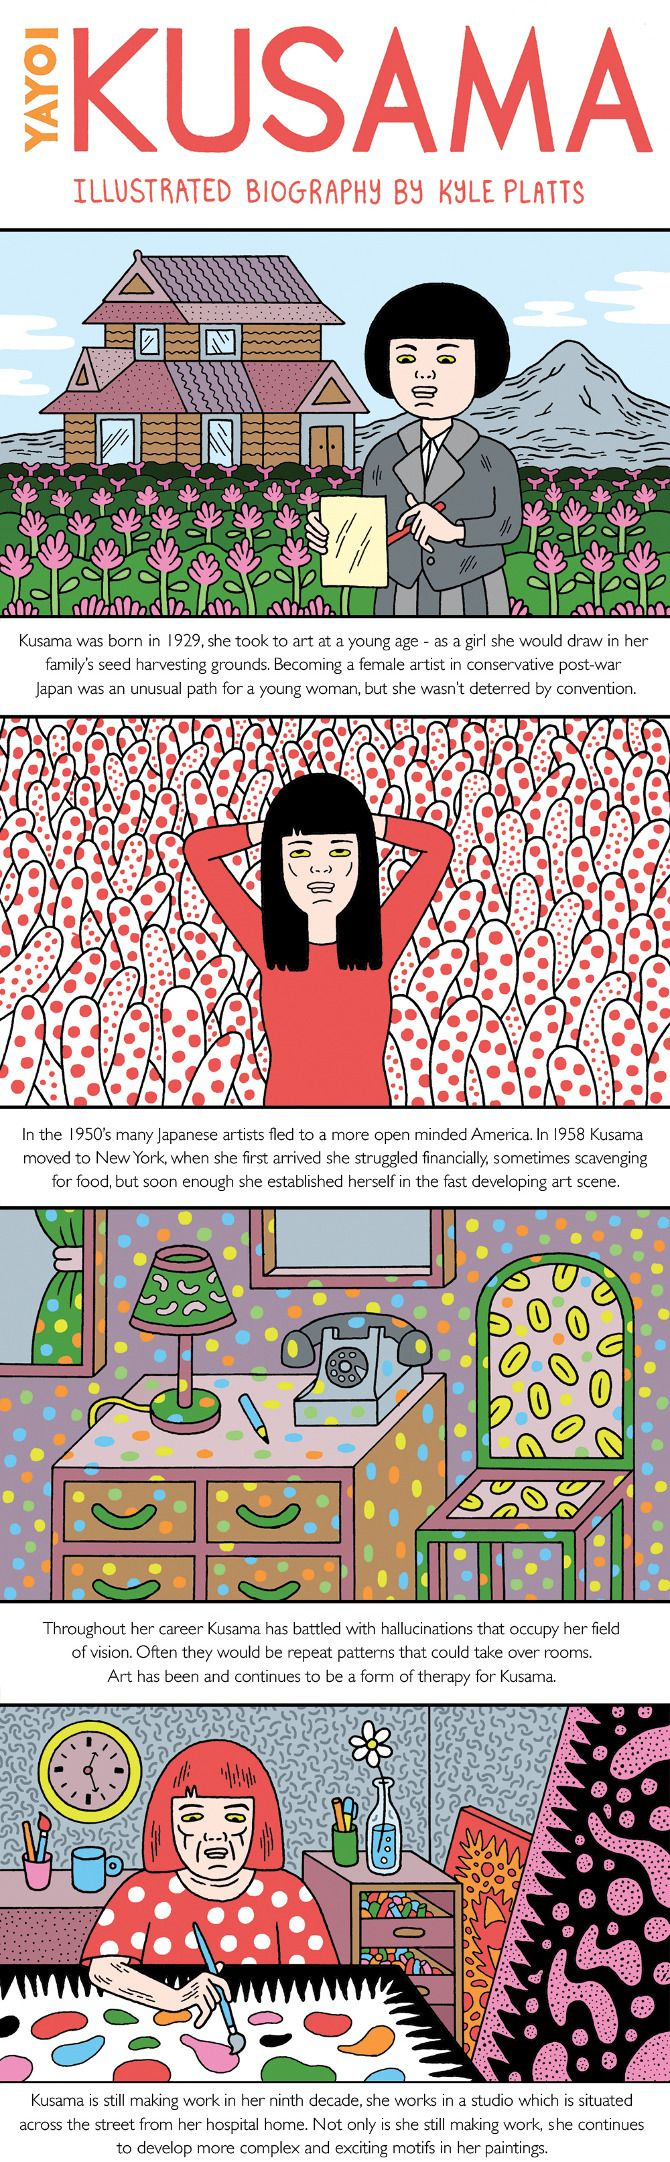 yayoi kusama biography Biography born in 1929 in matsumoto, japan, kusama briefly studied painting in kyoto before moving to new york city in the late 1950s since her first solo show in her native japan in 1952, the artist's work has been featured widely in both solo and group presentations.